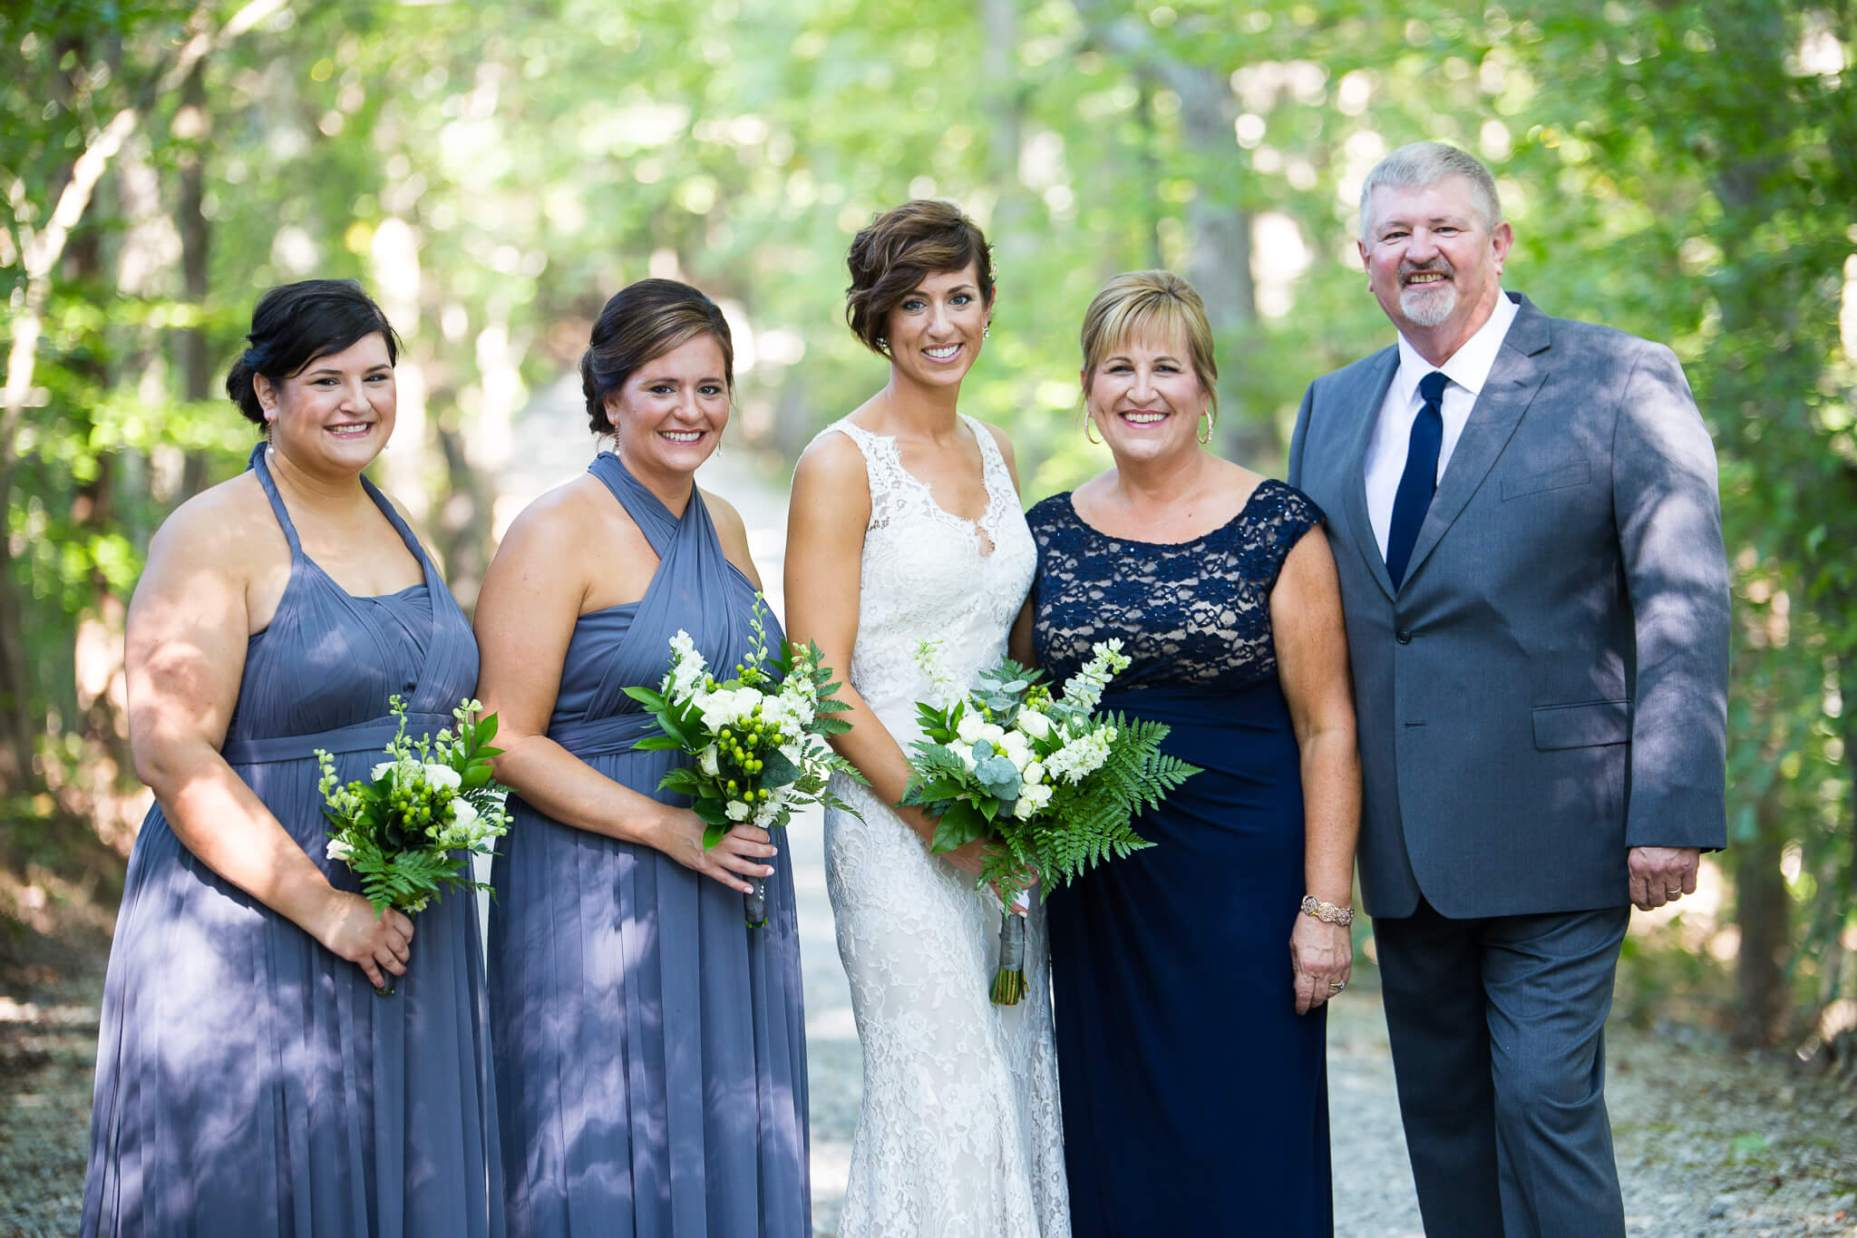 wedding-photography-anderson-358